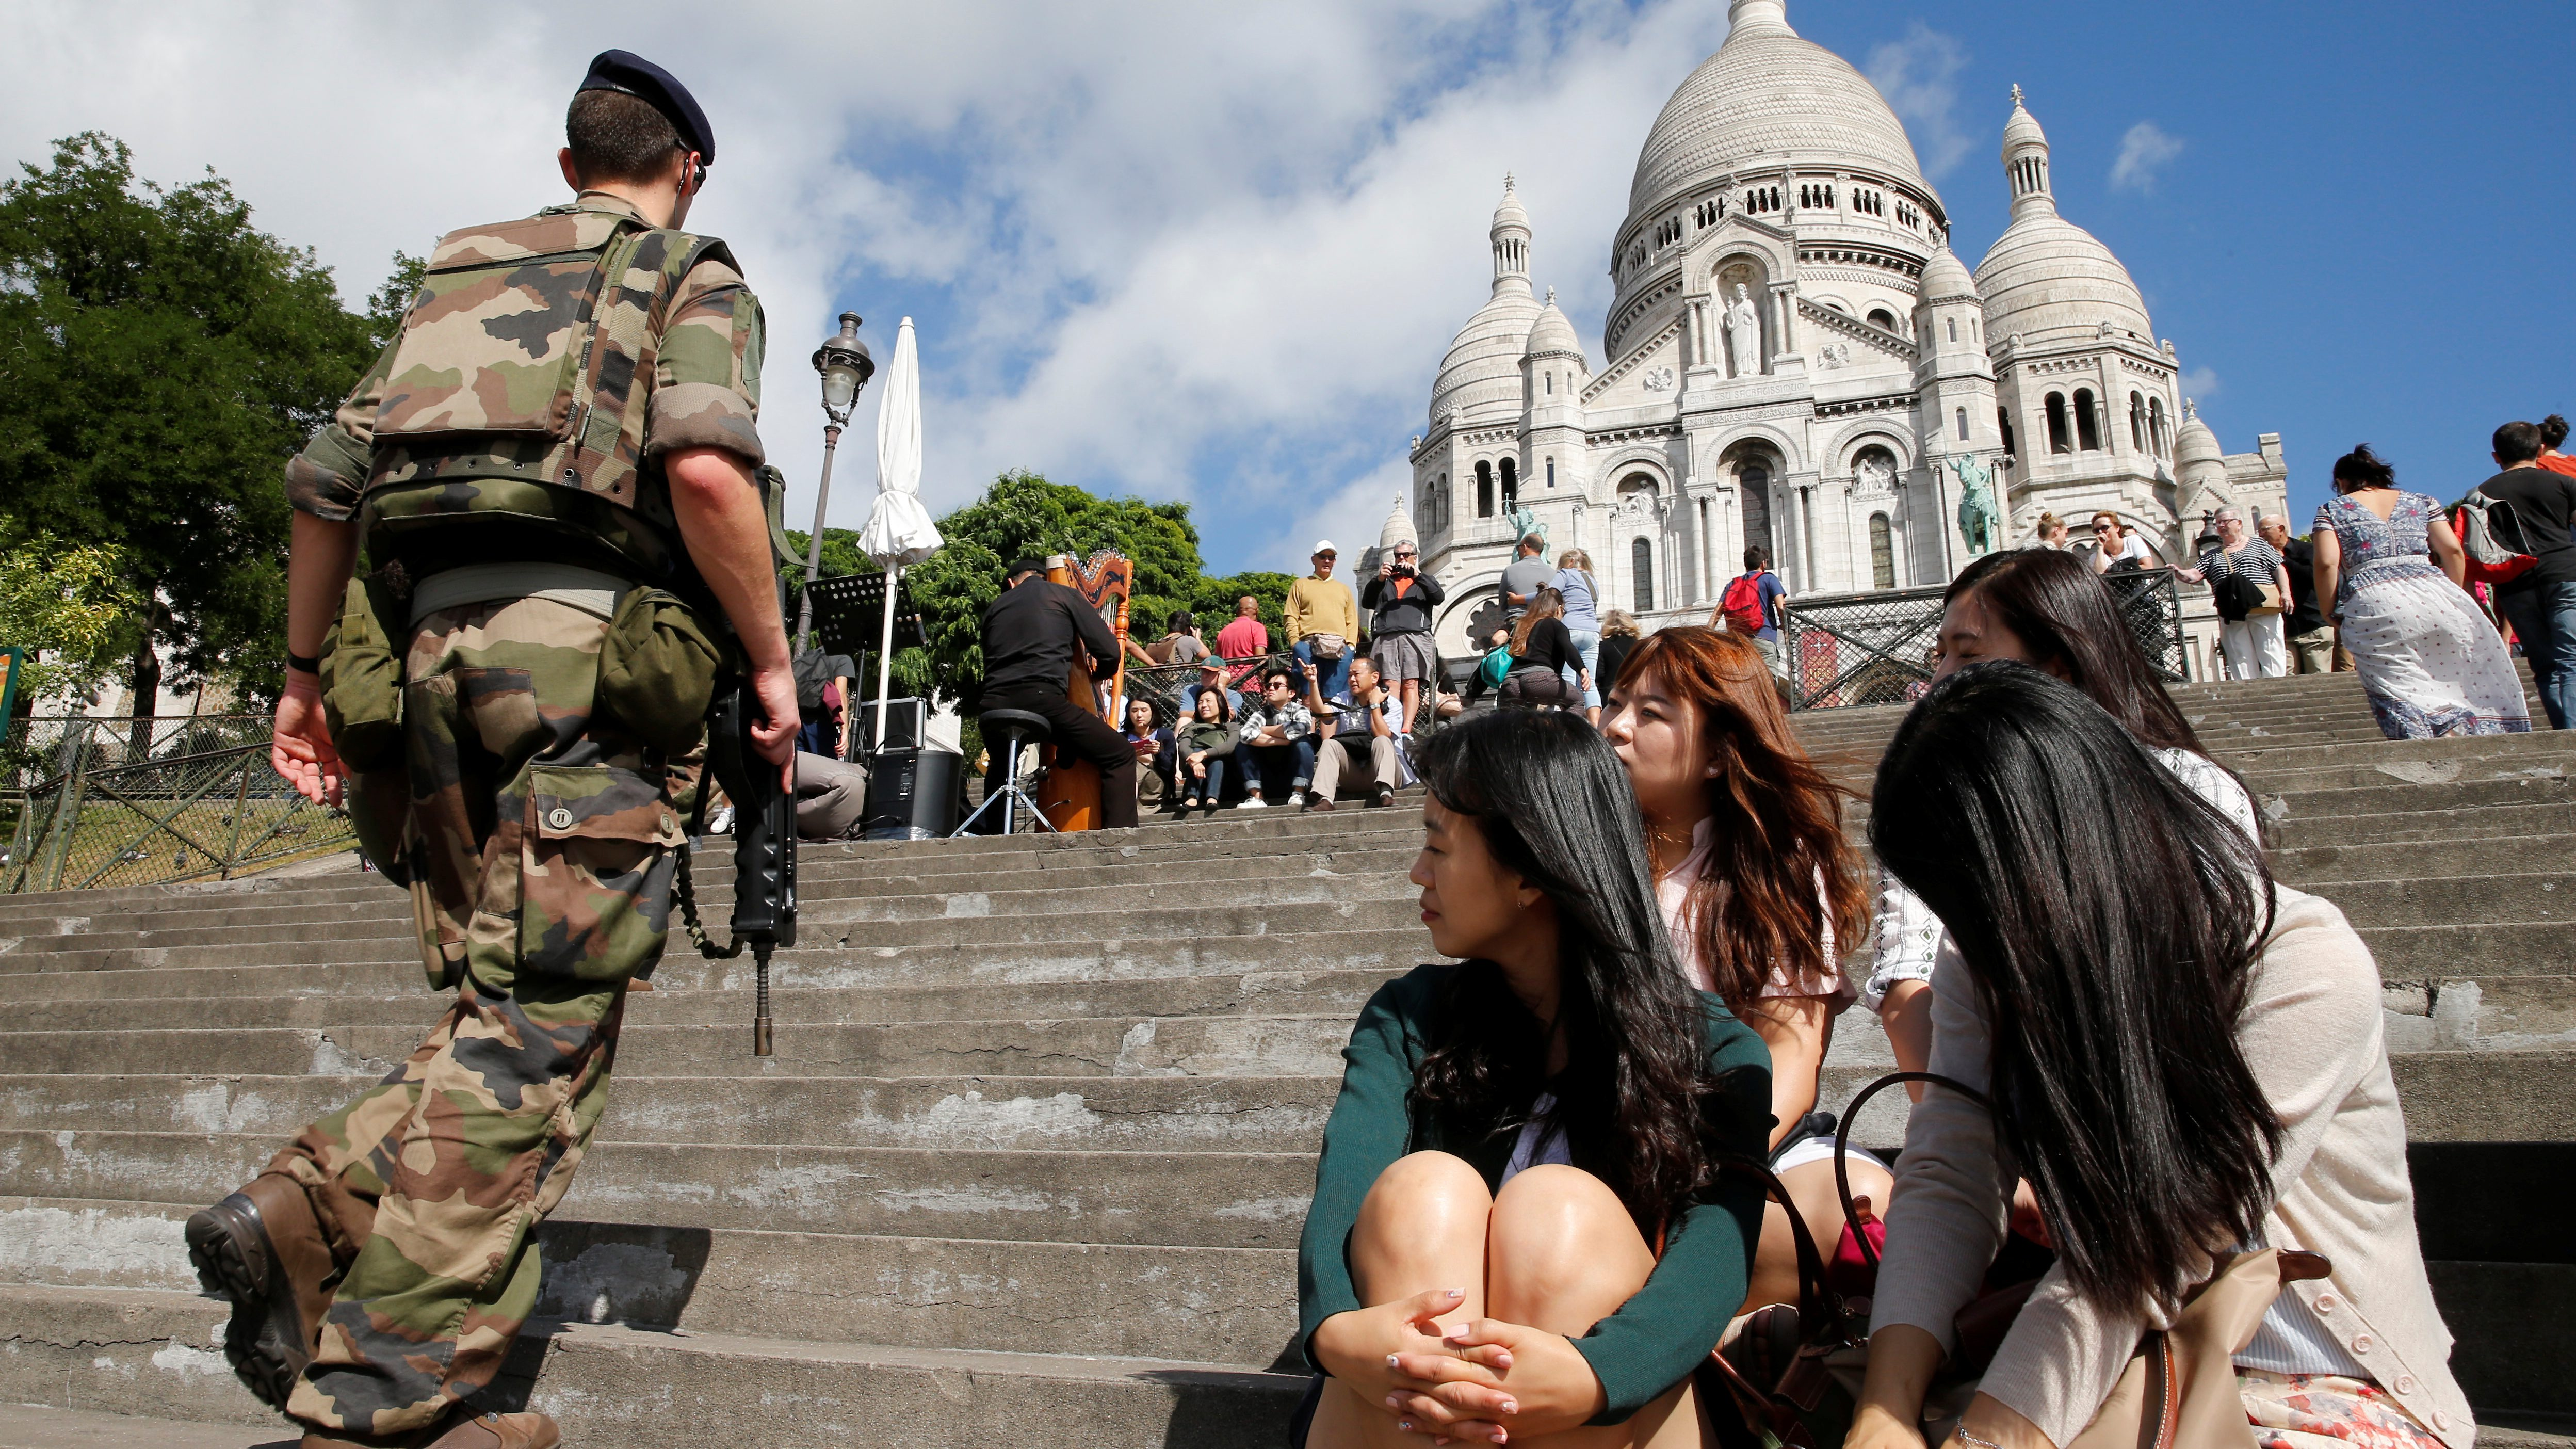 French soldier patrols under the gaze of Korean tourists at Montmartre's Sacre Coeur Church in Paris